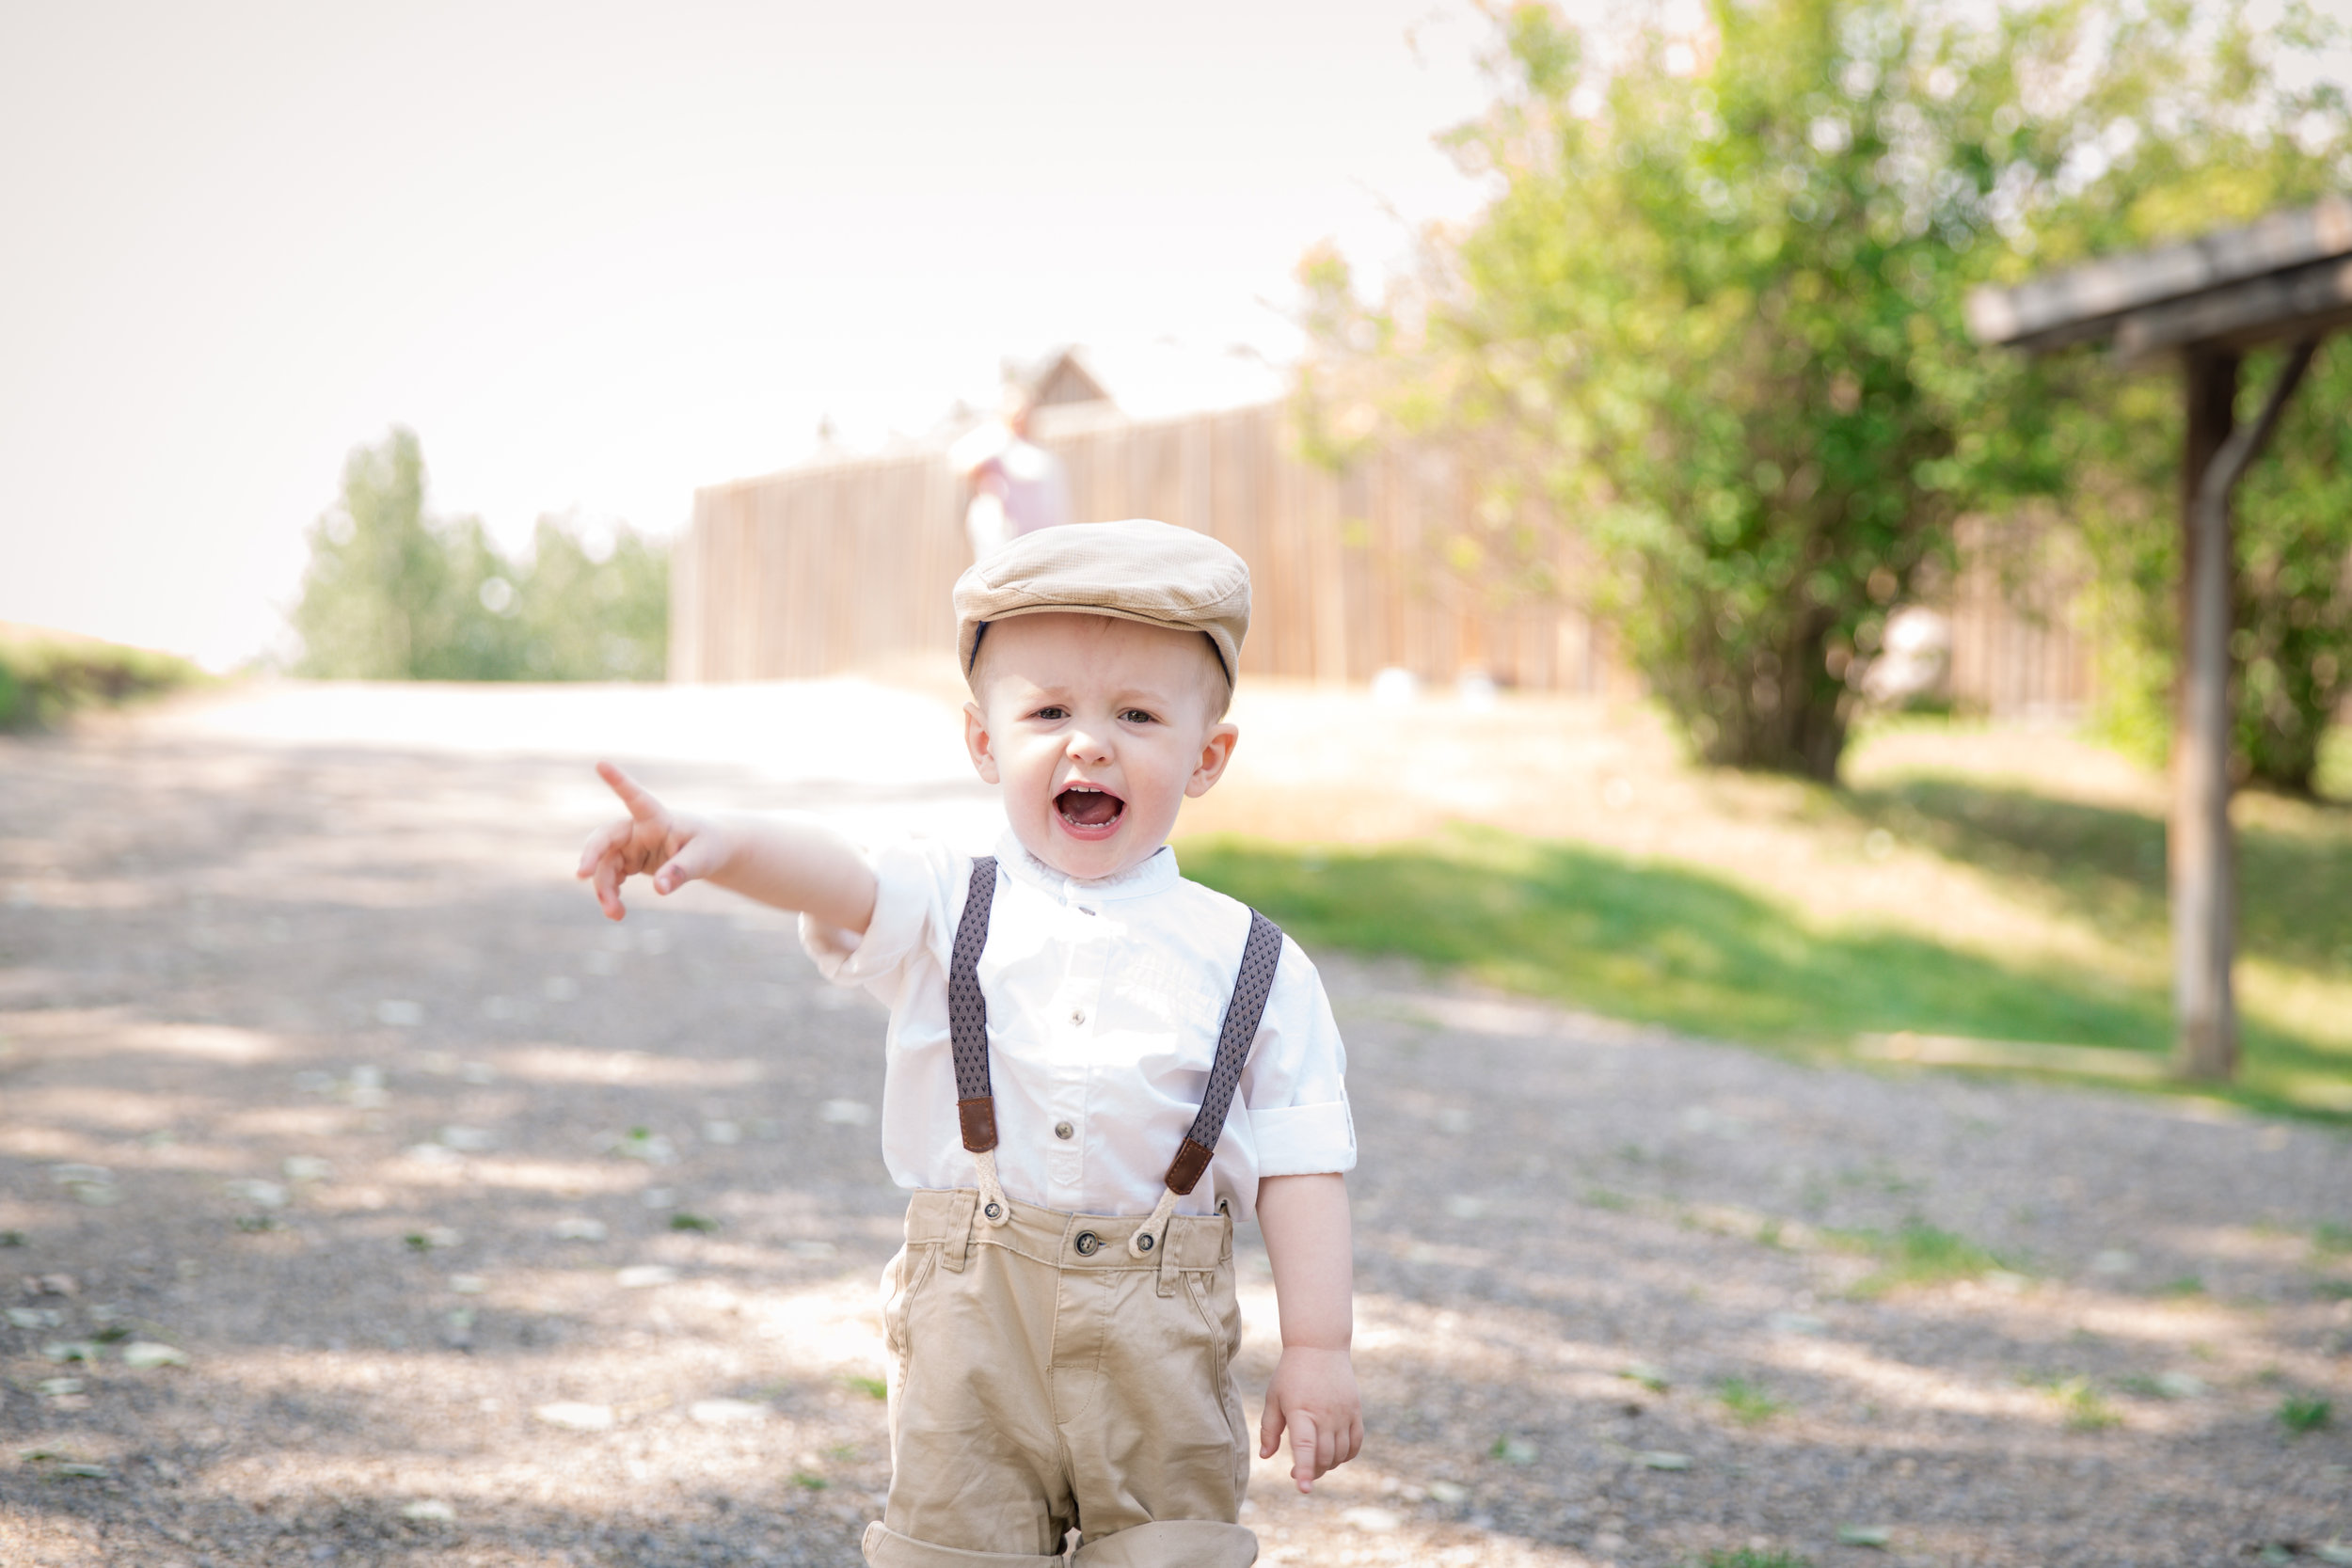 Little boy dressed in old style clothing pointing at something. Calgary Child Photographer. Milashka Photographer.